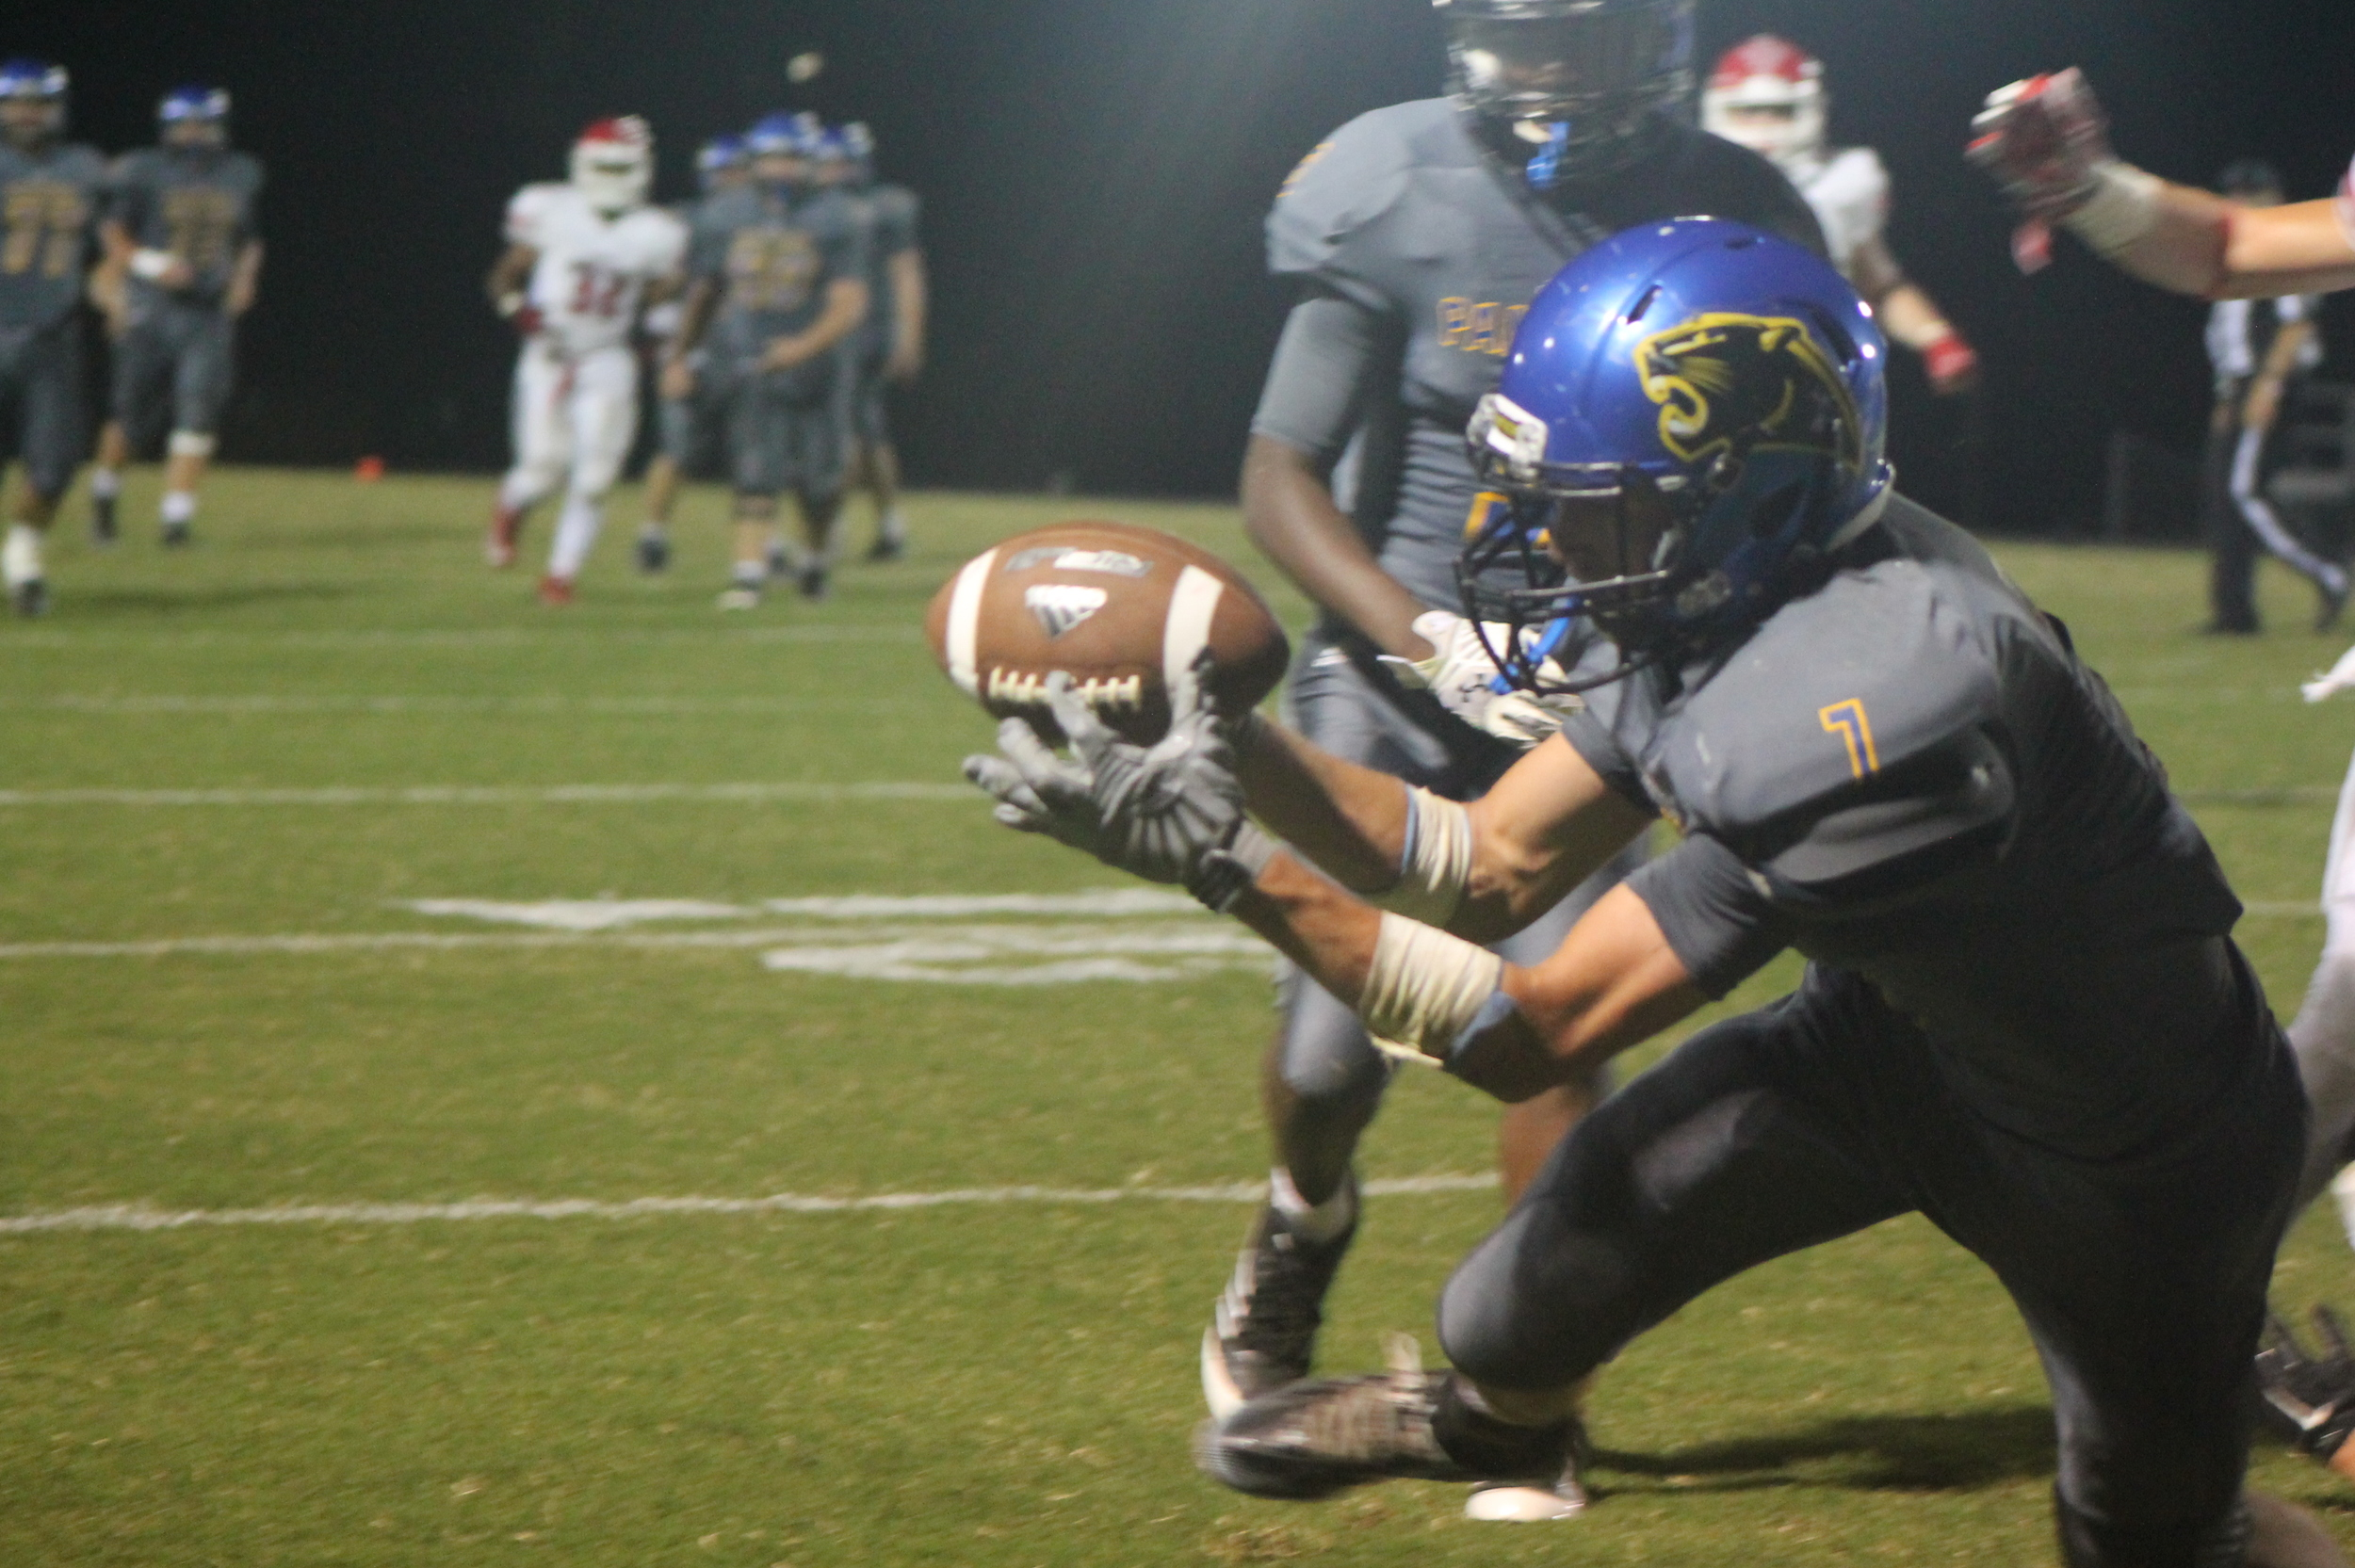 (Photo by Maddy Routon) Trey Scudder with a touchdown reception for North Lamar against Van.